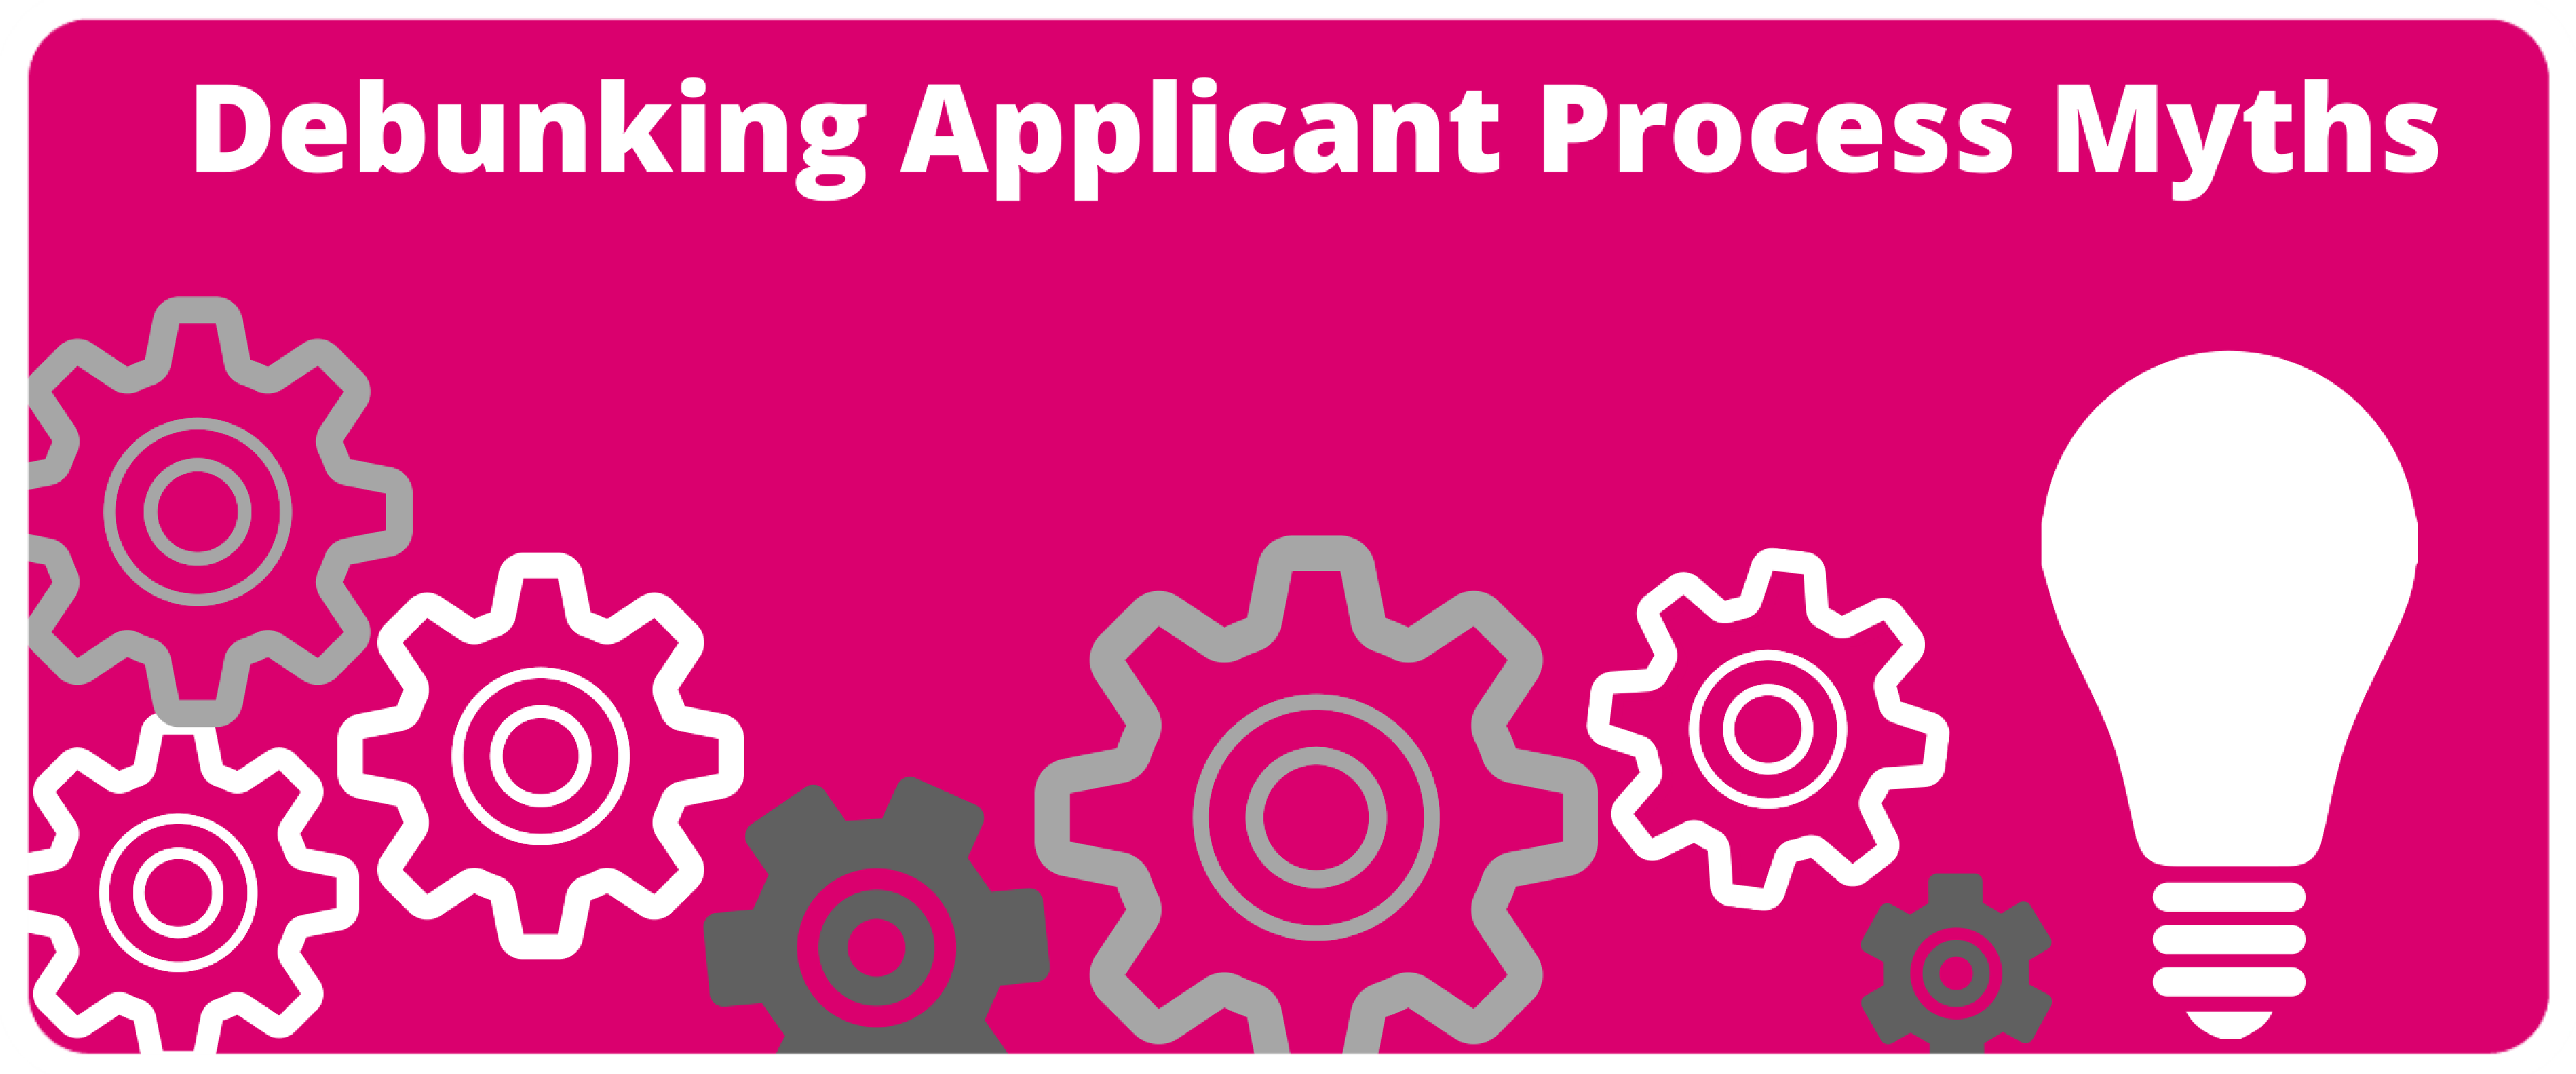 Debunking six myths of application process